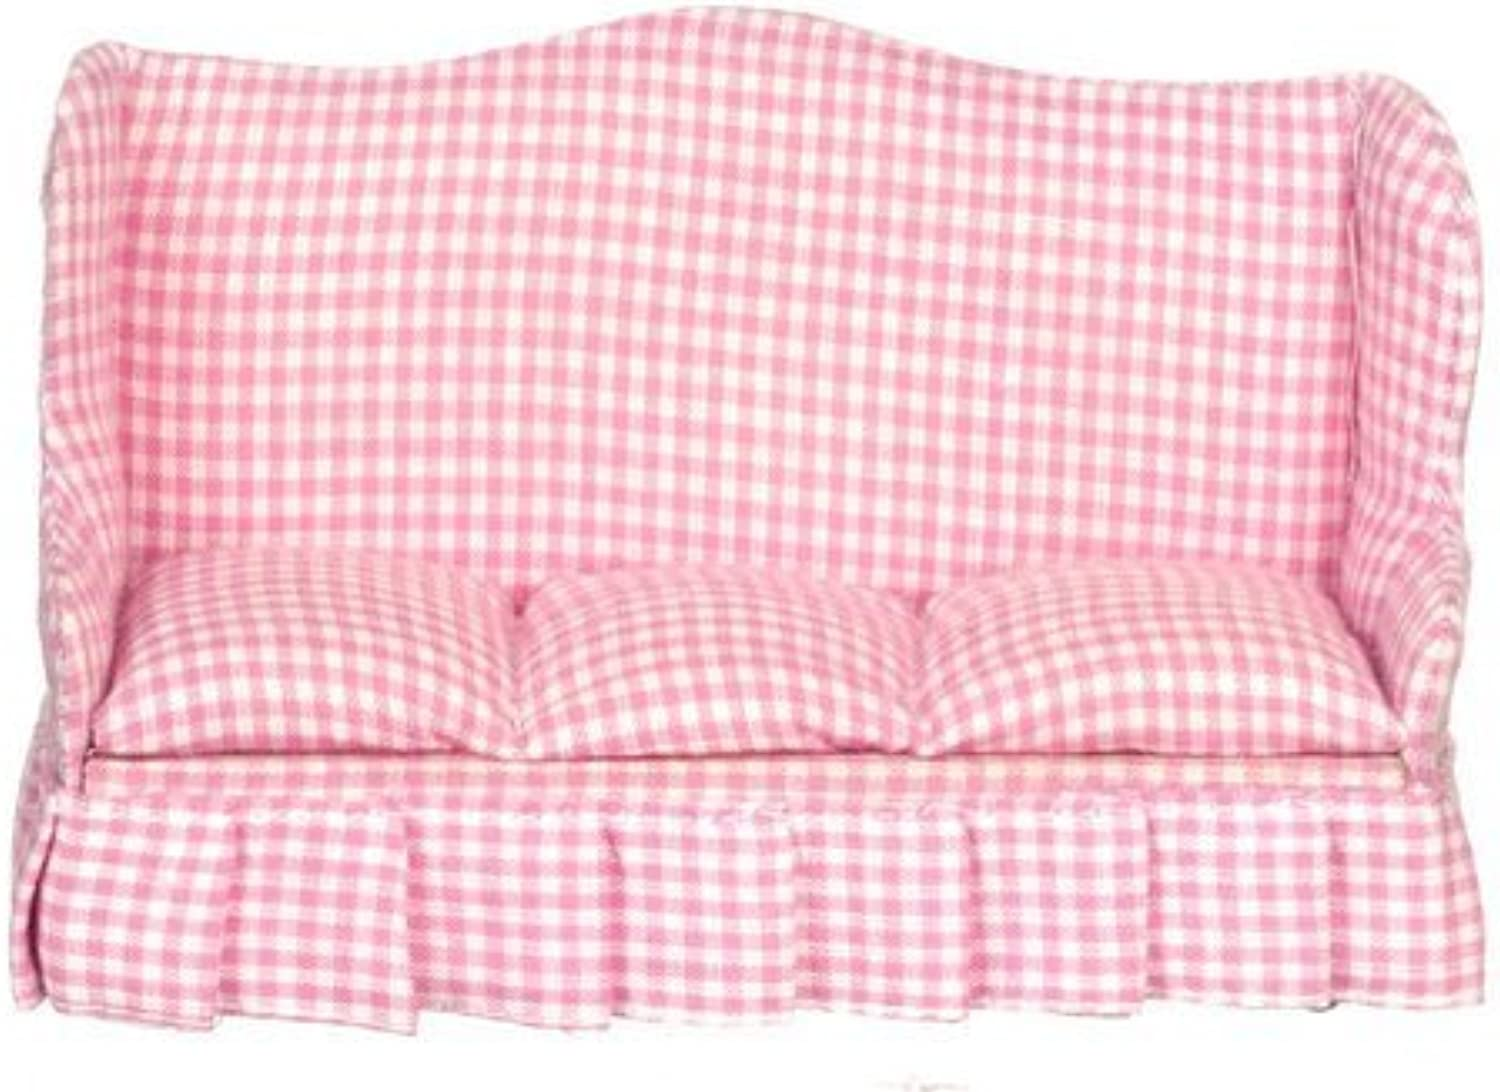 Dollhouse Living Room Sofa Pink Fabric by Classics